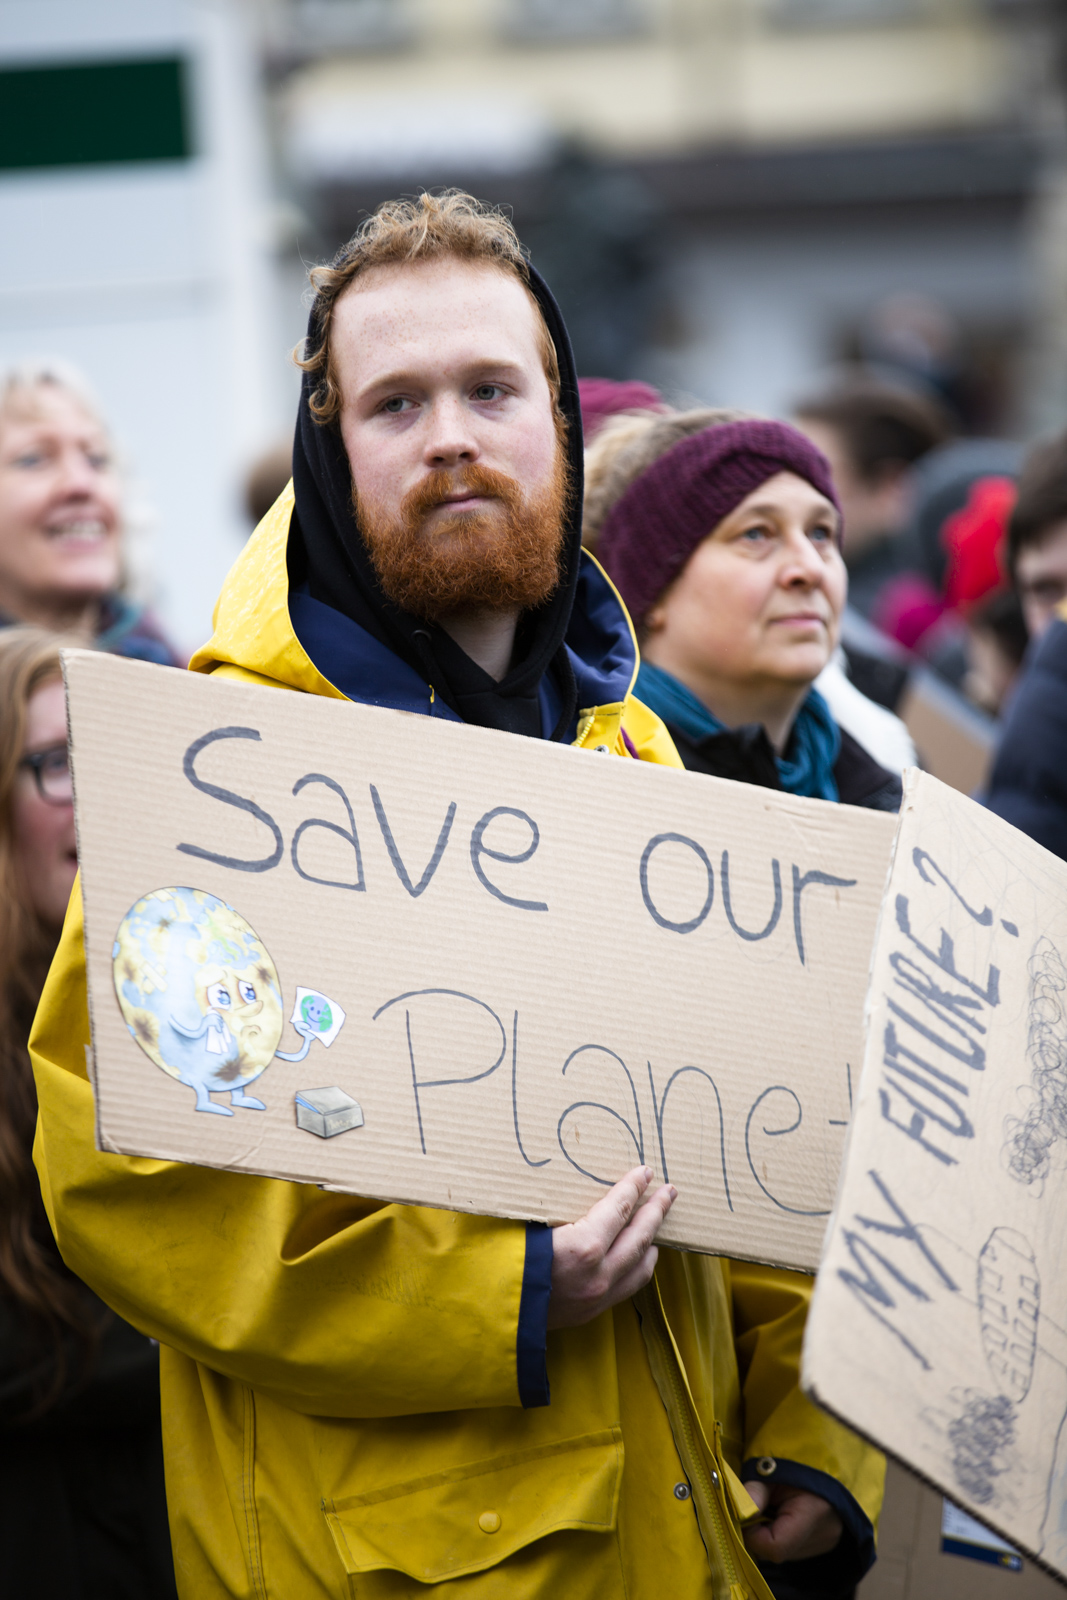 Fridays for future (March 15 2019)